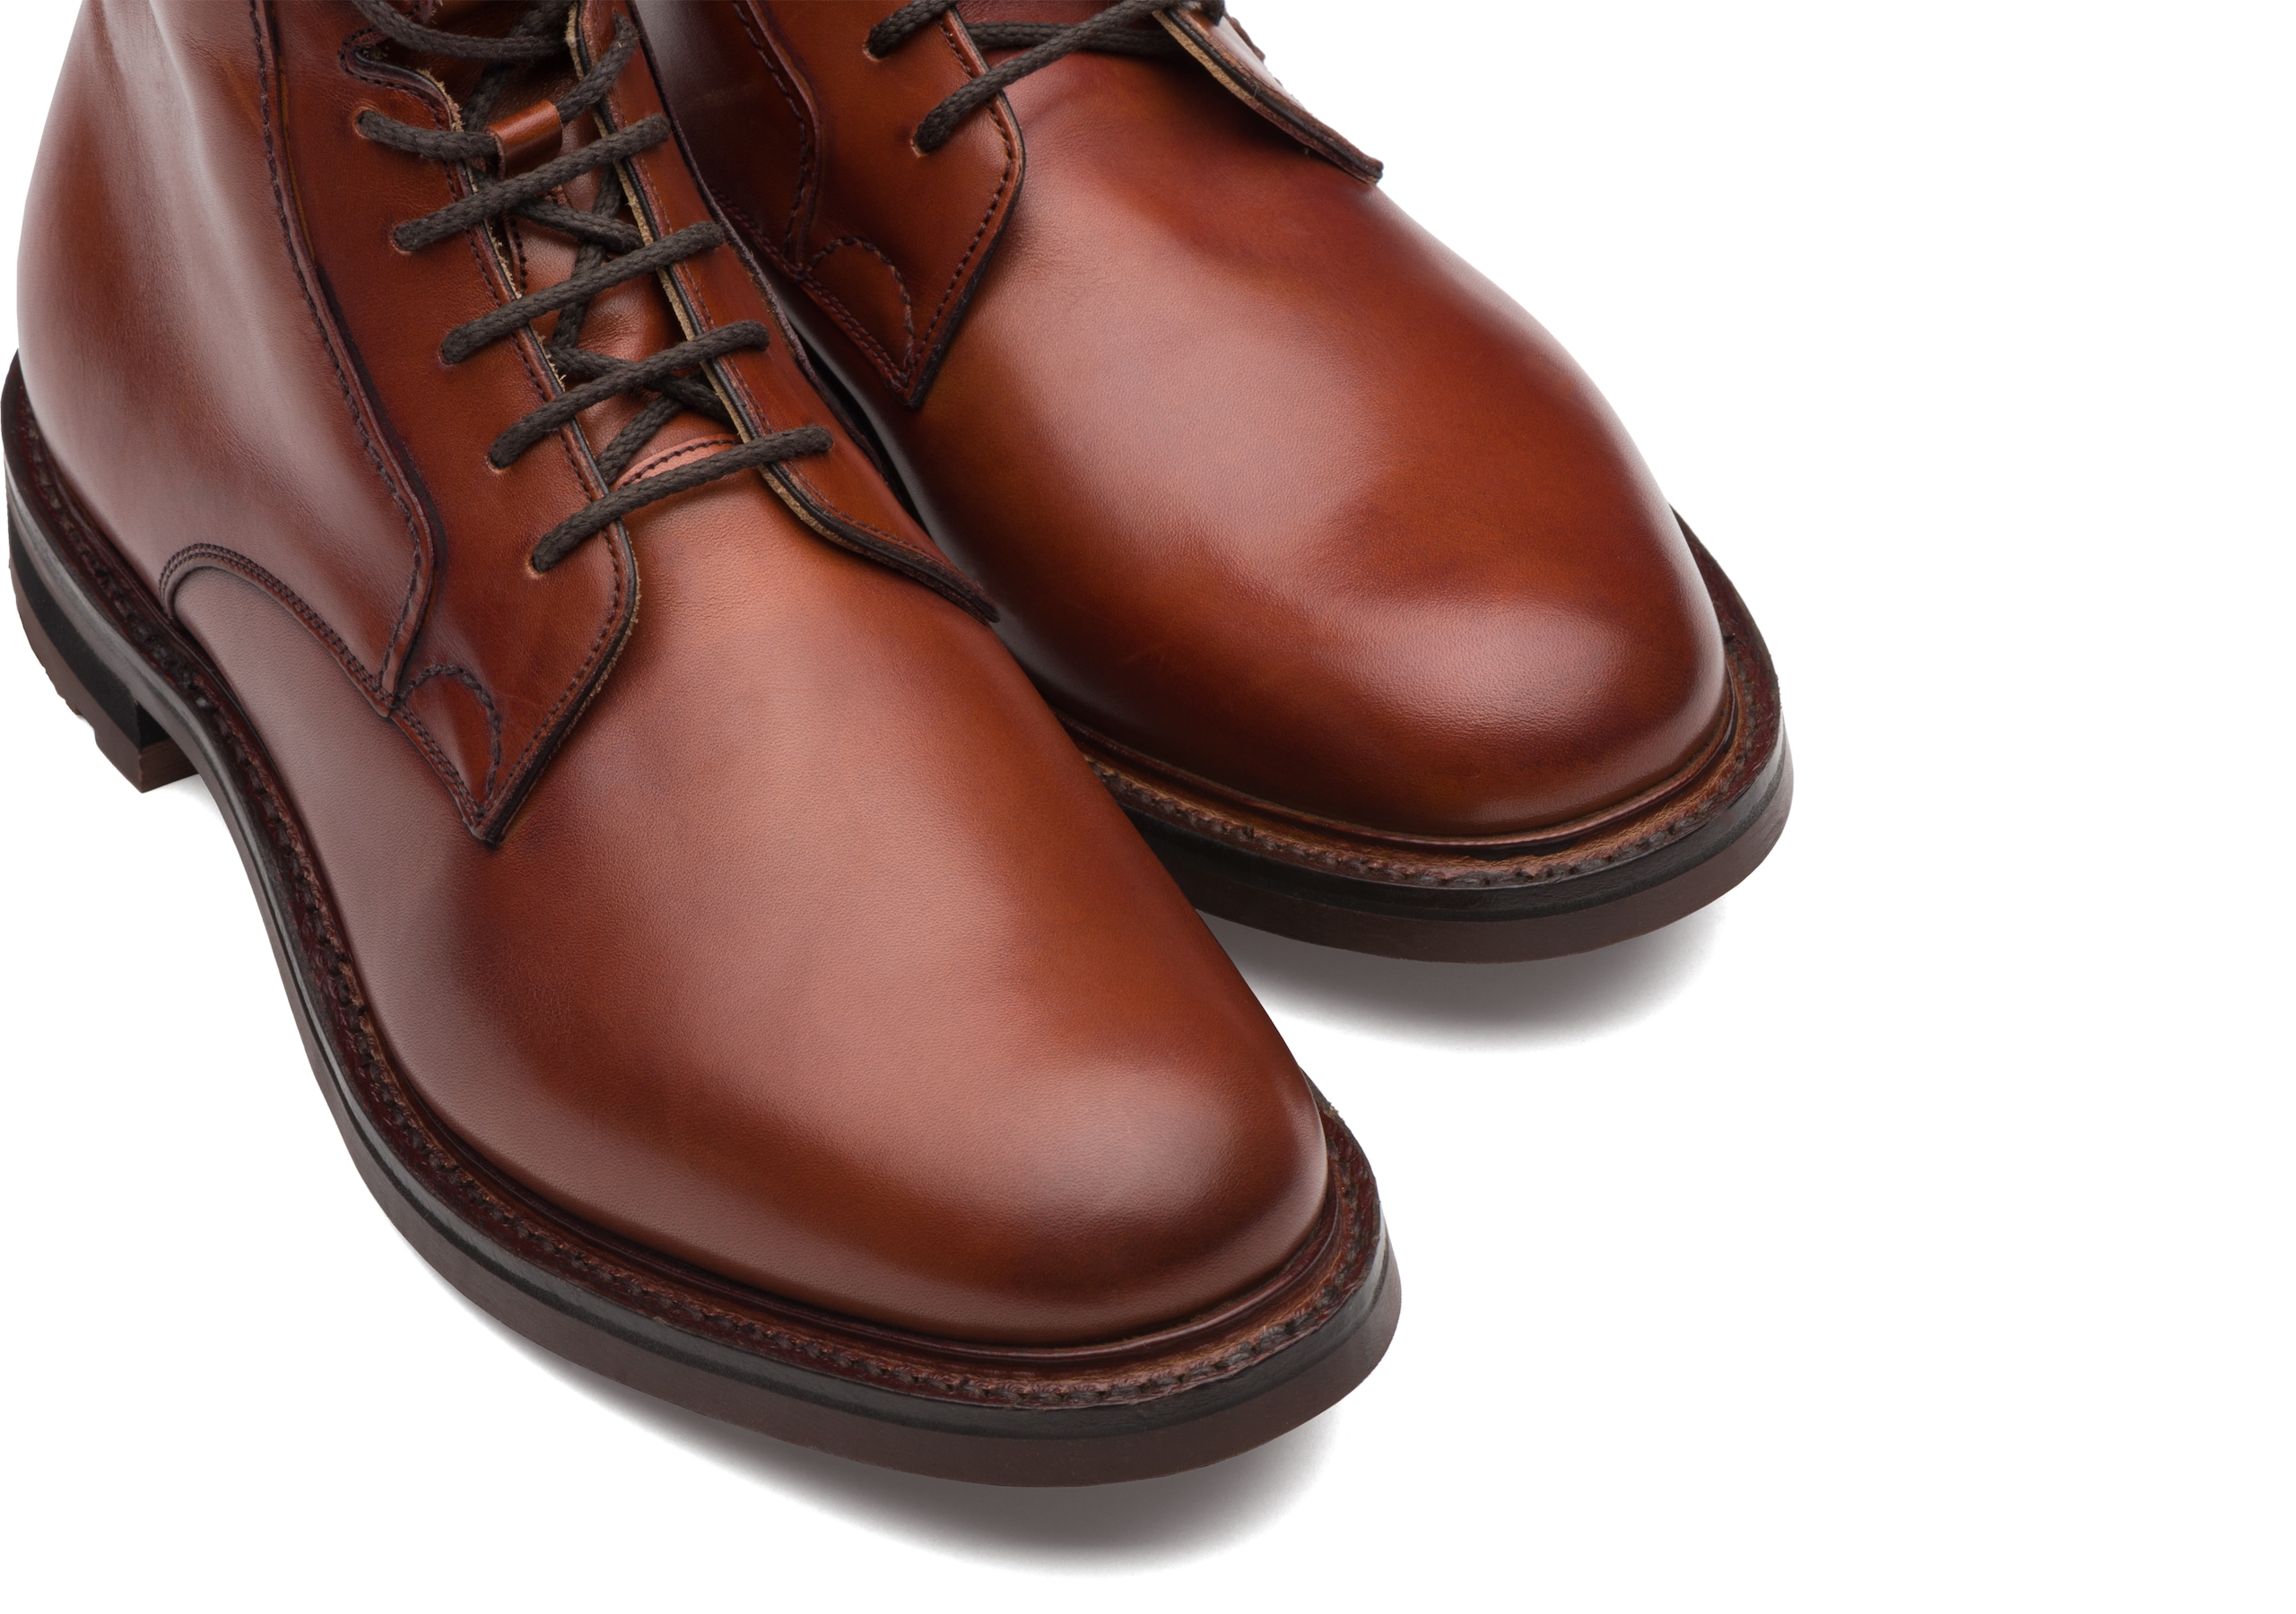 Wootton Church's Calf Leather Lace-Up Boot Brown